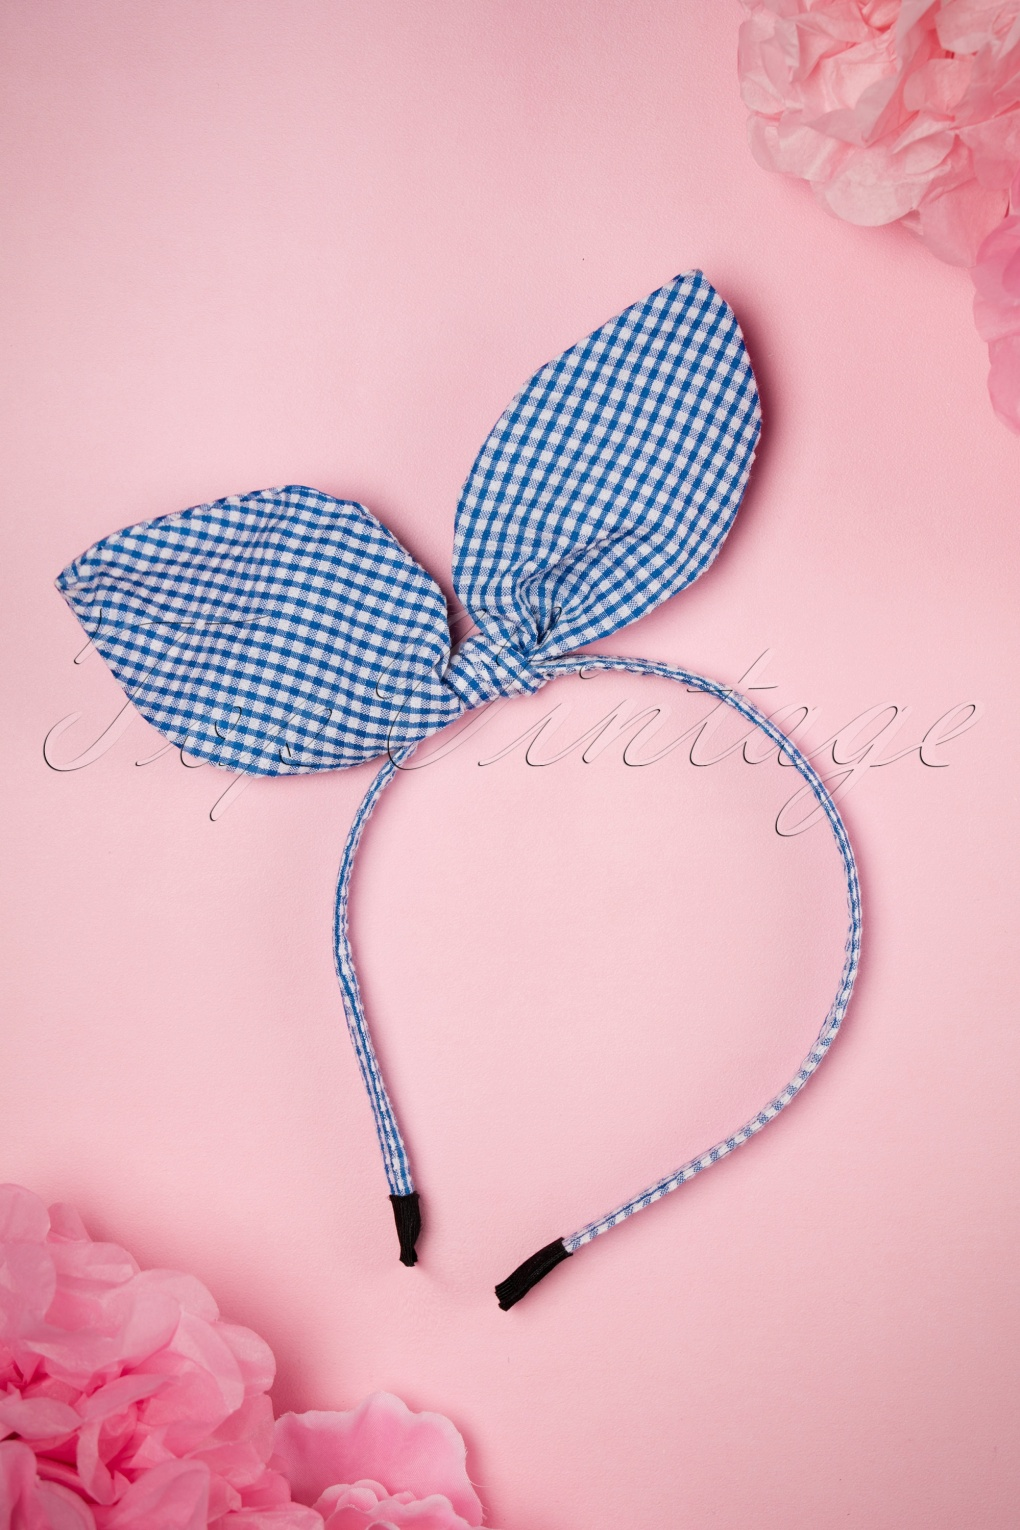 Vintage Hair Accessories: Combs, Headbands, Flowers, Scarf, Wigs 50s Gingham Head Band in Blue and White £9.73 AT vintagedancer.com